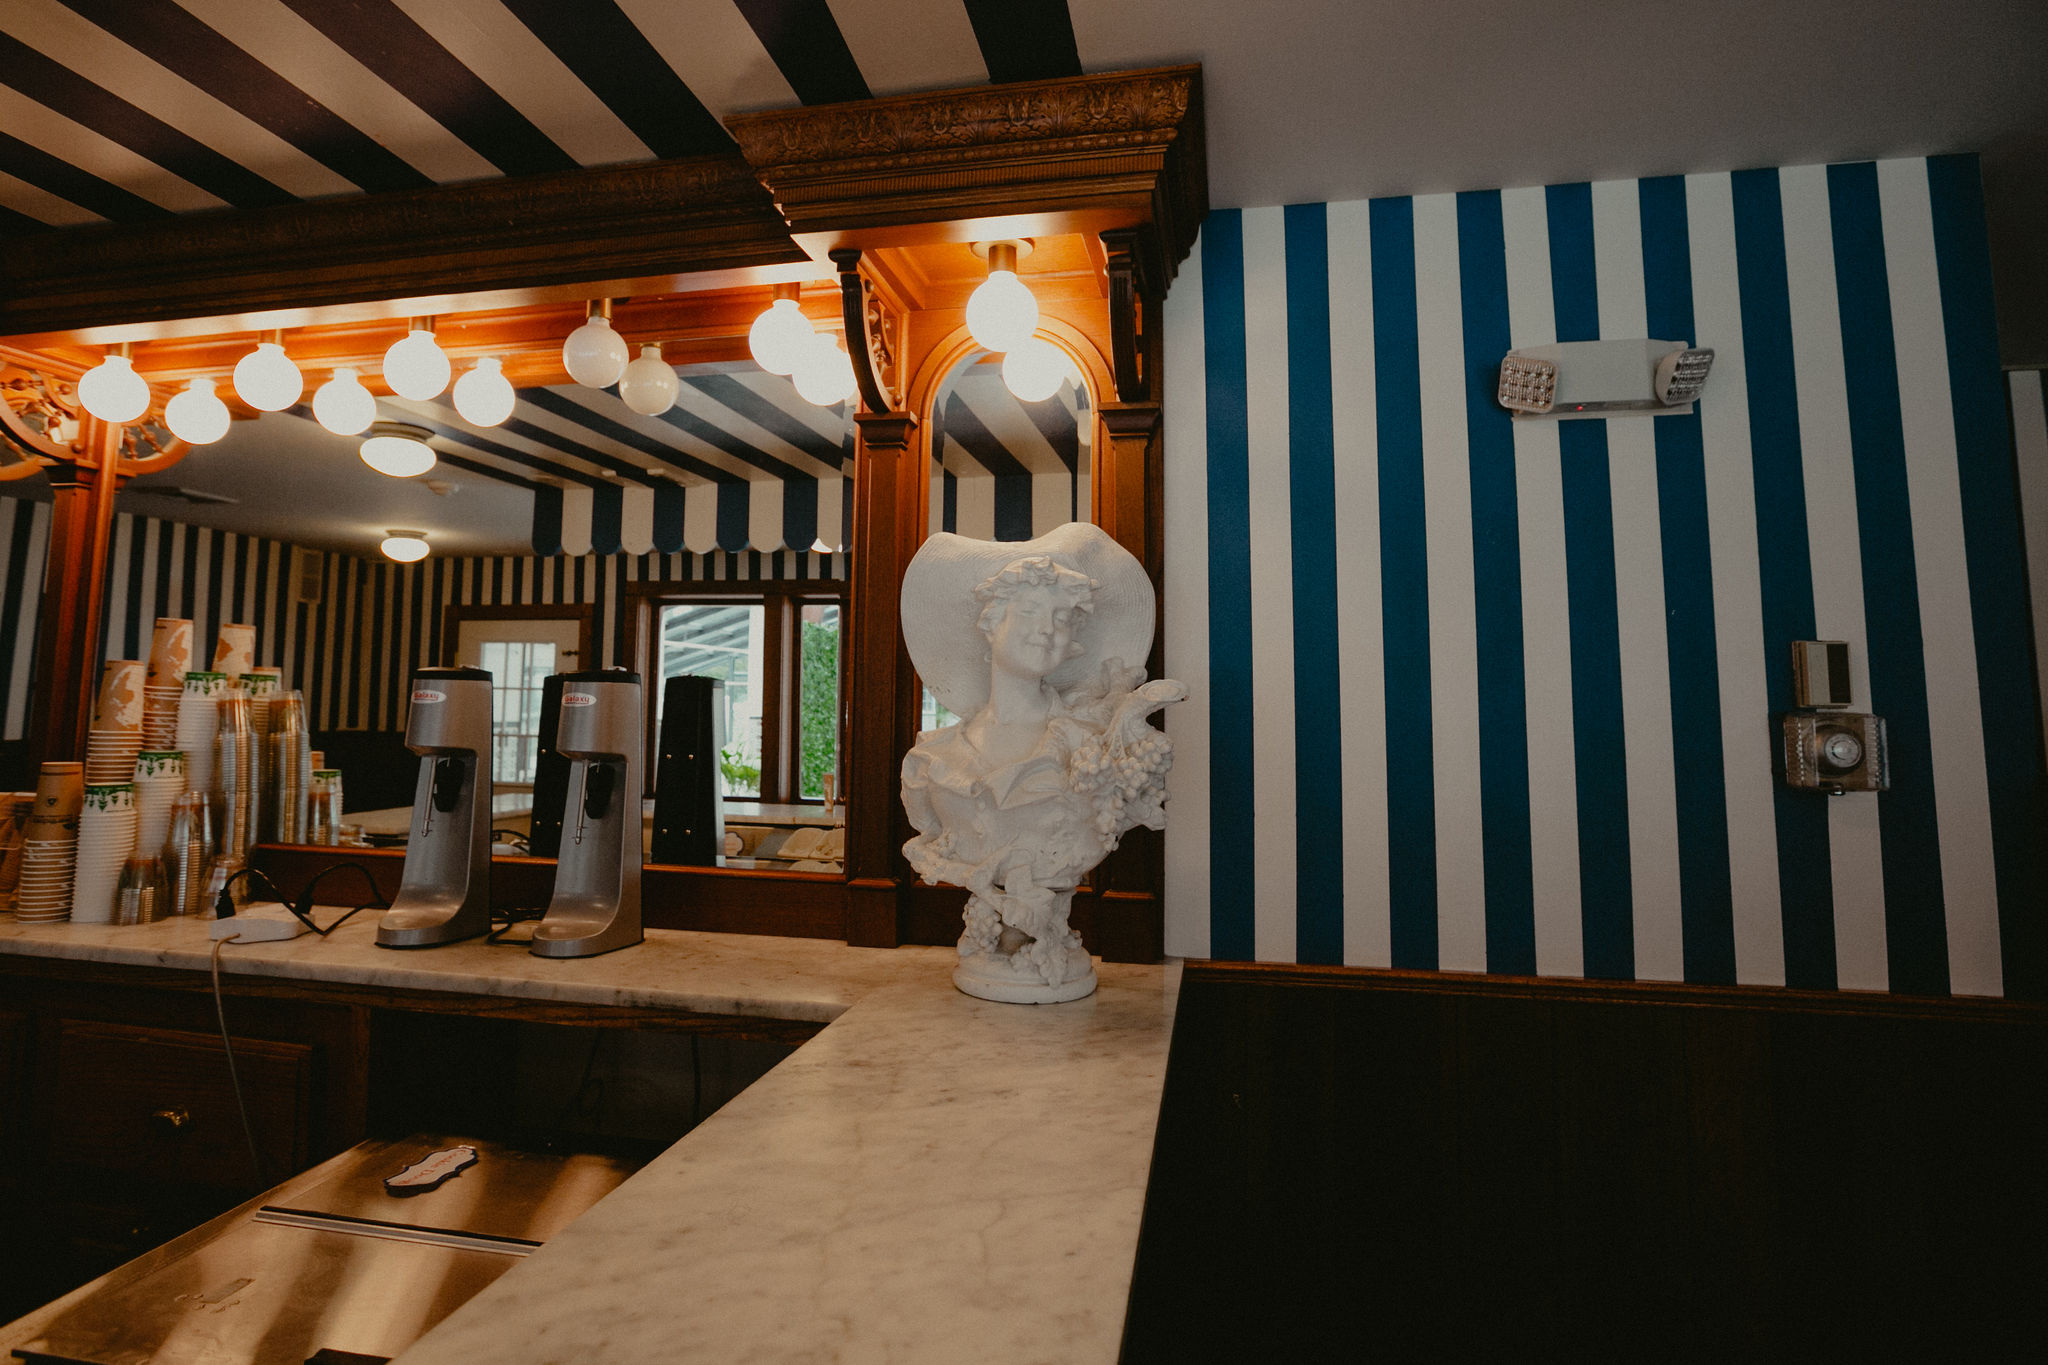 ENJOY - The Inn's ice cream parlor is a perennial guest favorite. Our self-serve ice cream parlor is located in the clubhouse adjacent to the pool, and is open 24/7 for our guests. Enjoy a complimentary selection of ice cream, toppings, and cones.